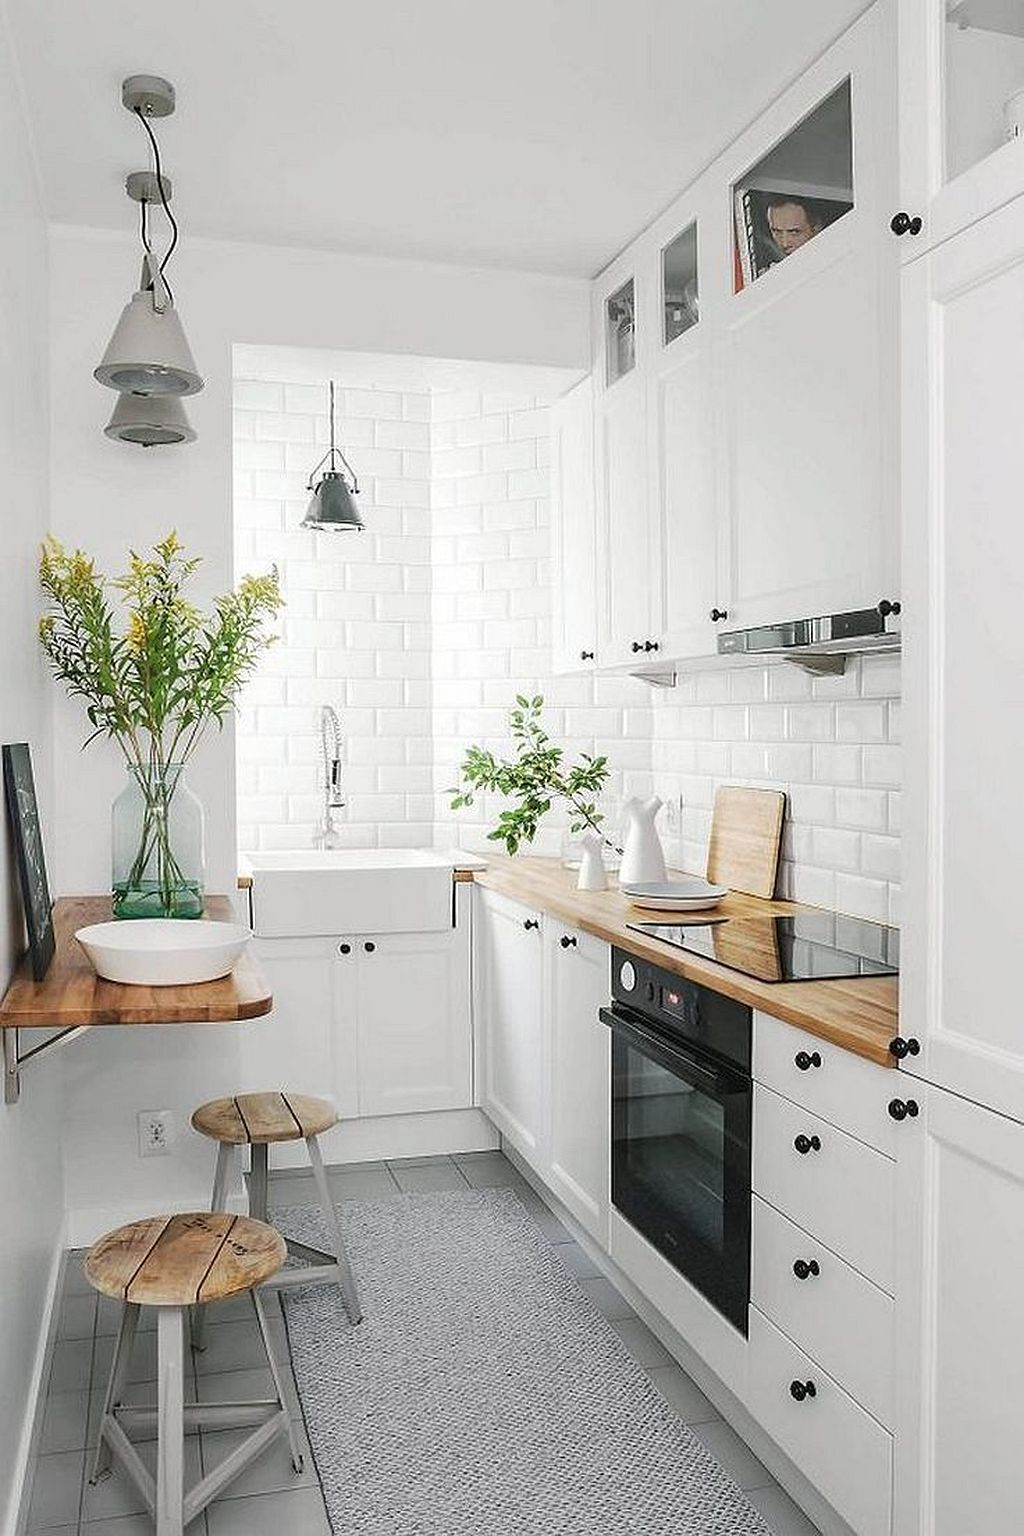 30+ Great Interior Design Ideas For Small Space | Cocina pequeña ...